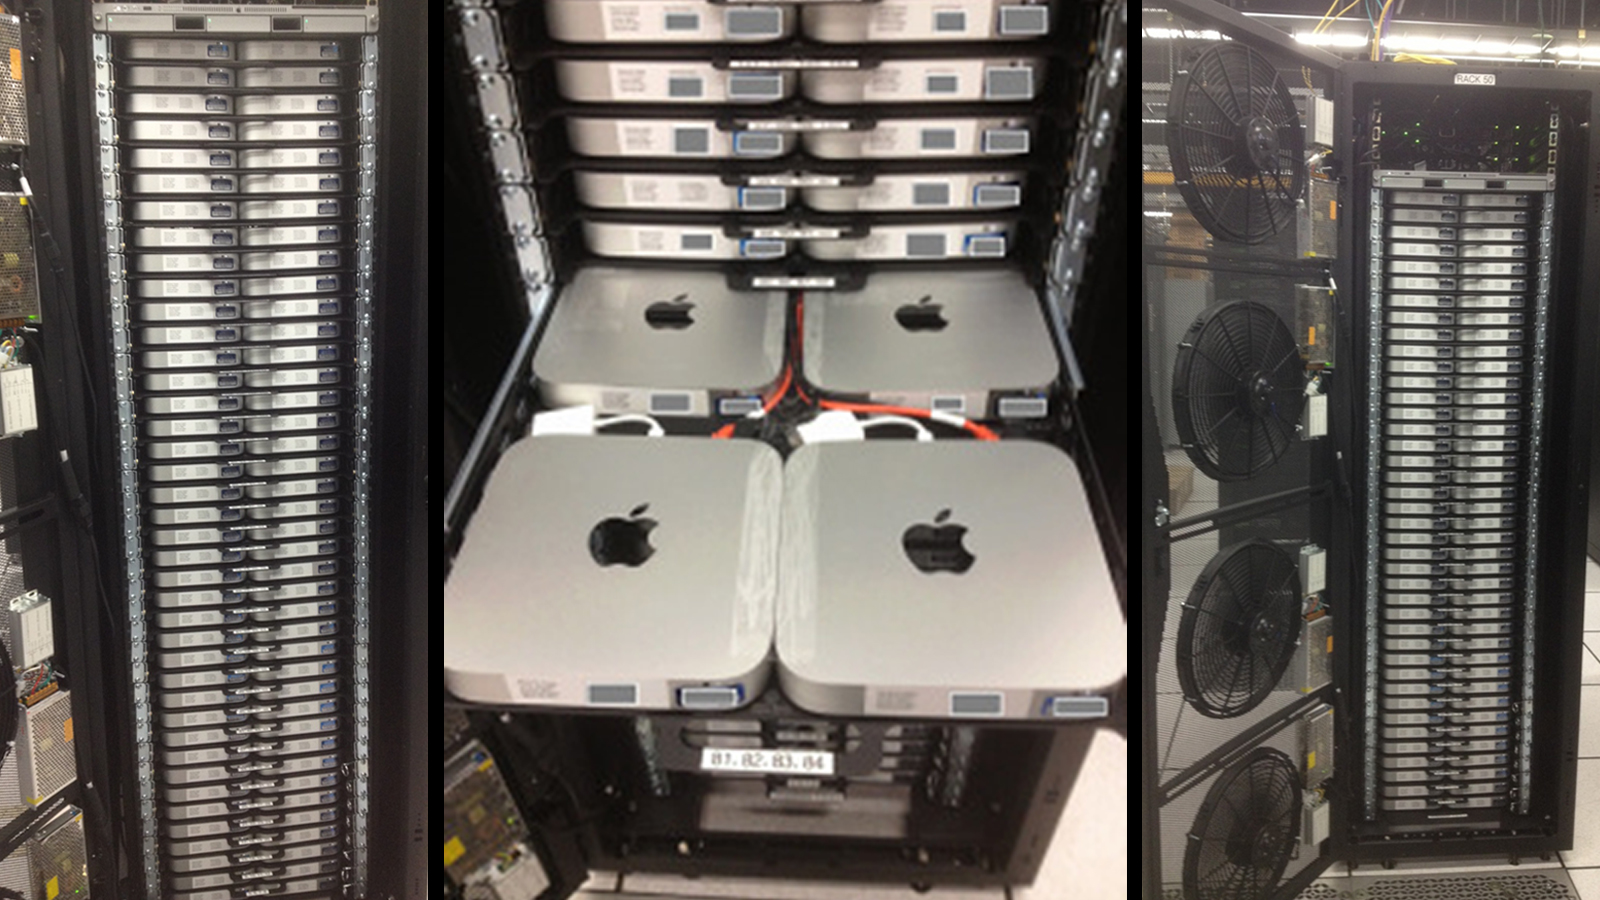 This Custom Data Centre Rack Crams In 160 Mac Minis